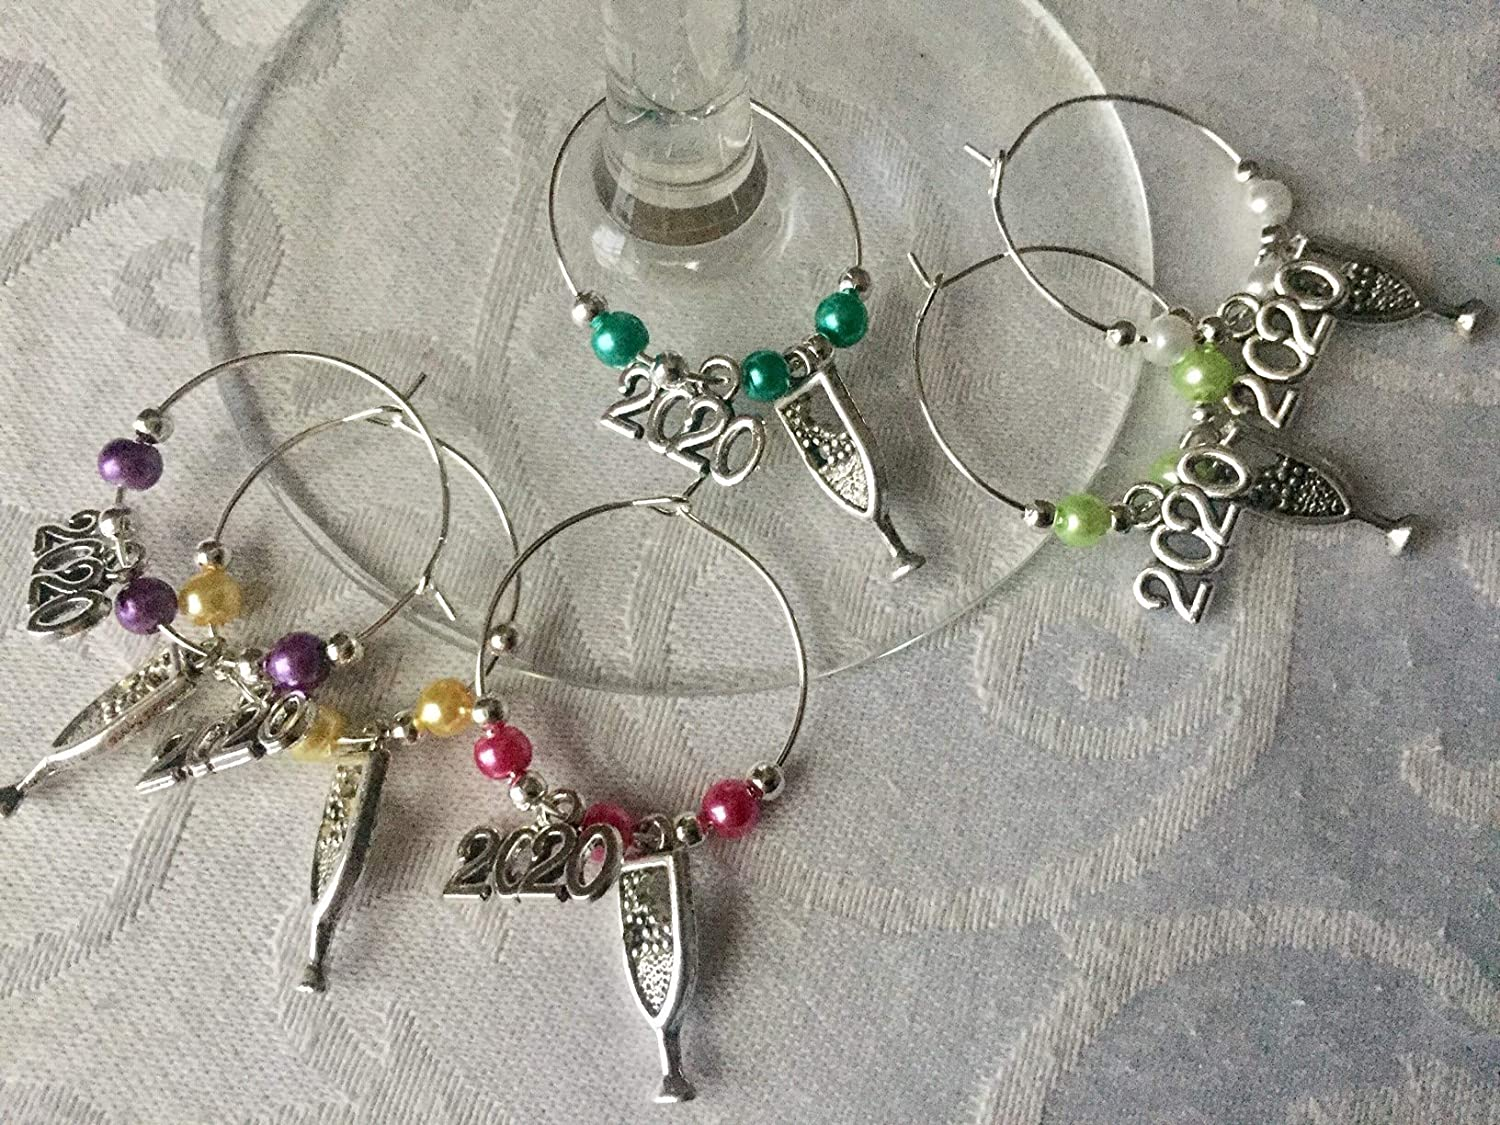 6 x 2020 New Years Eve Gin Gift or Wine Glass Charms Table Decorations